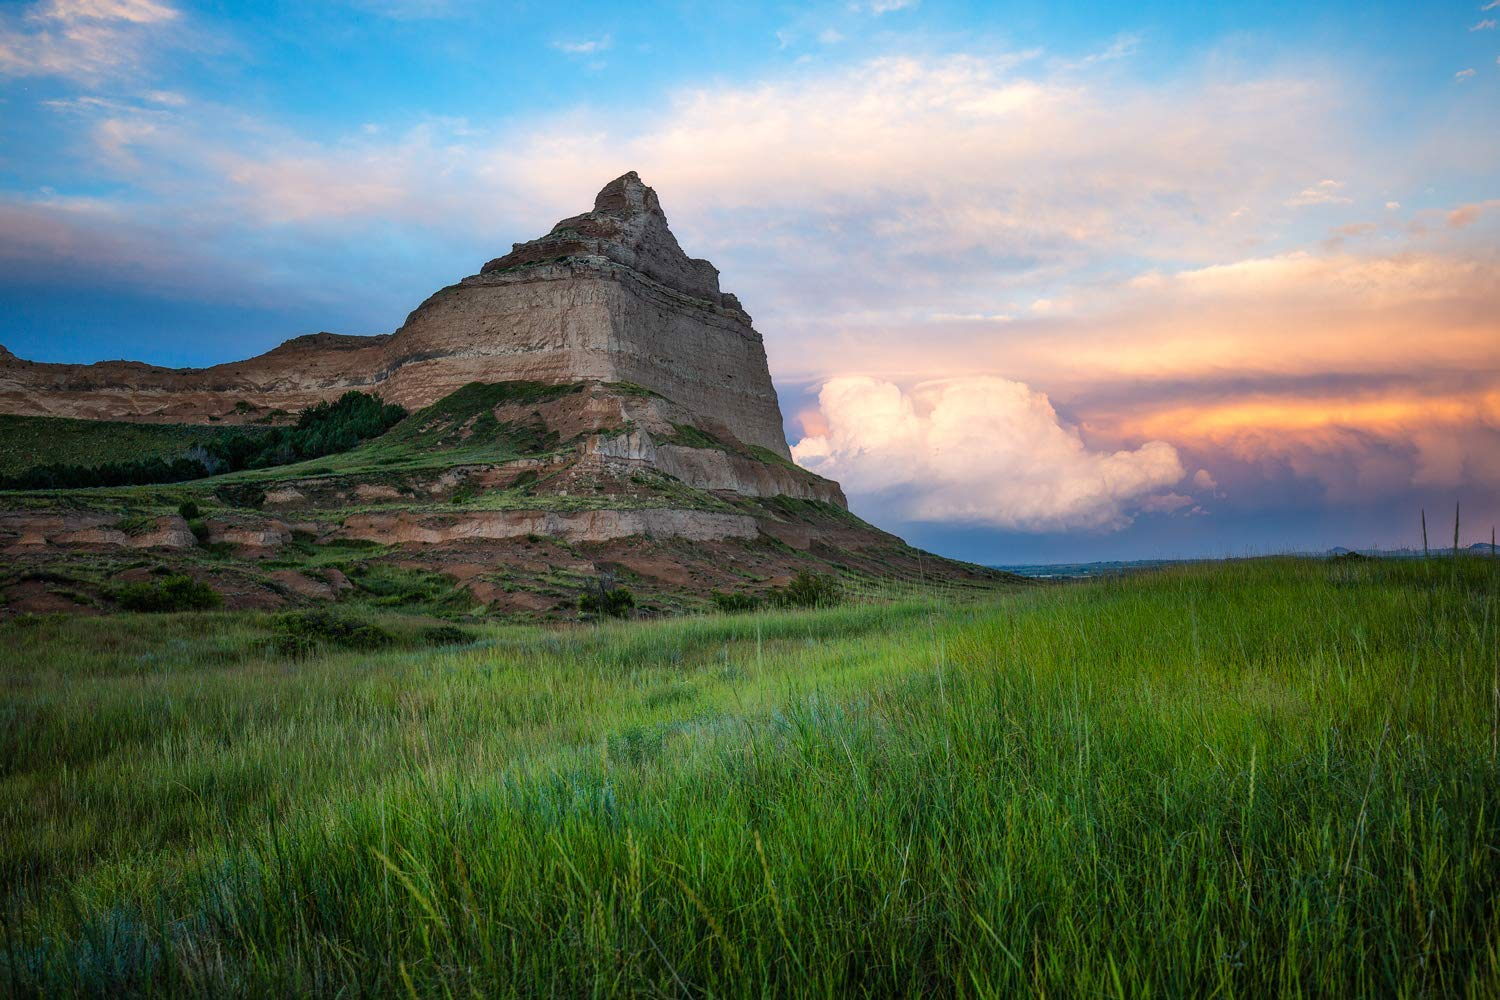 Nebraska Photography Wall Art Print - Picture of Scottsbluff at Sunset After Storms Western Landscape Photo Home Decor 5x7 to 30x45